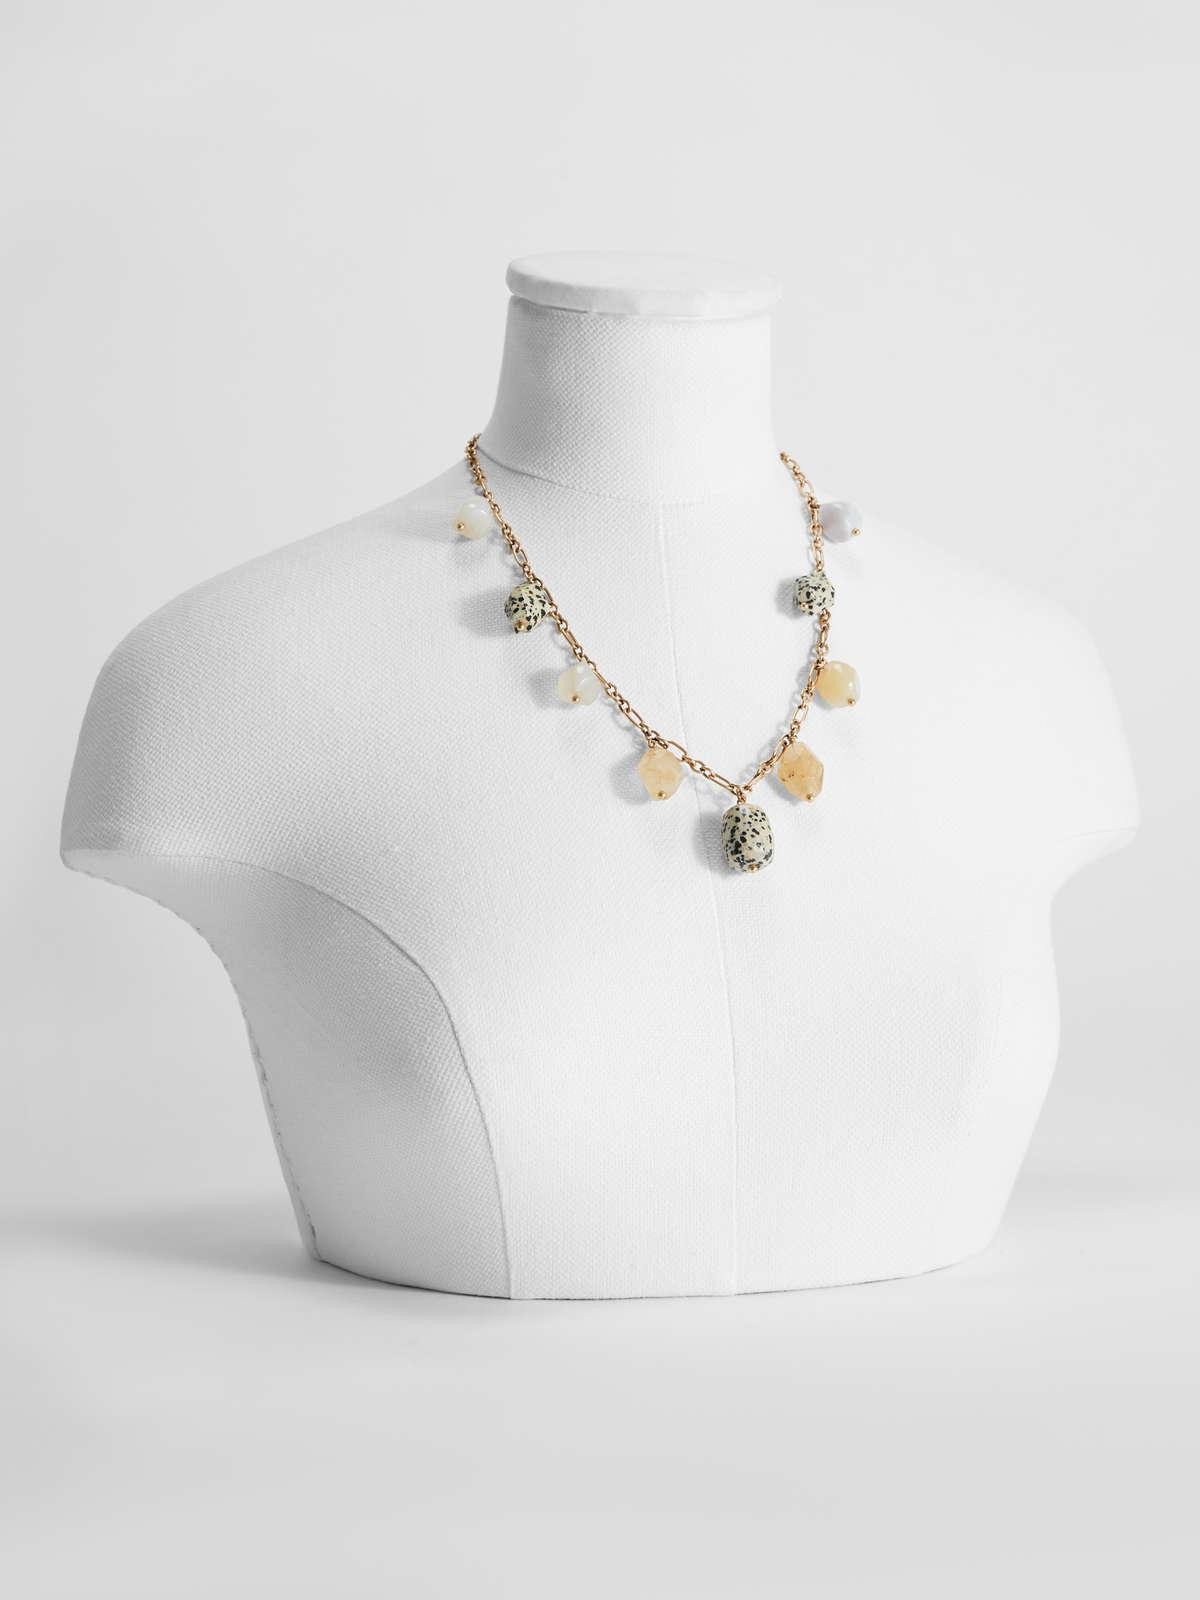 Womens Max Mara Jewelry | Necklace With Stone Charms Camel